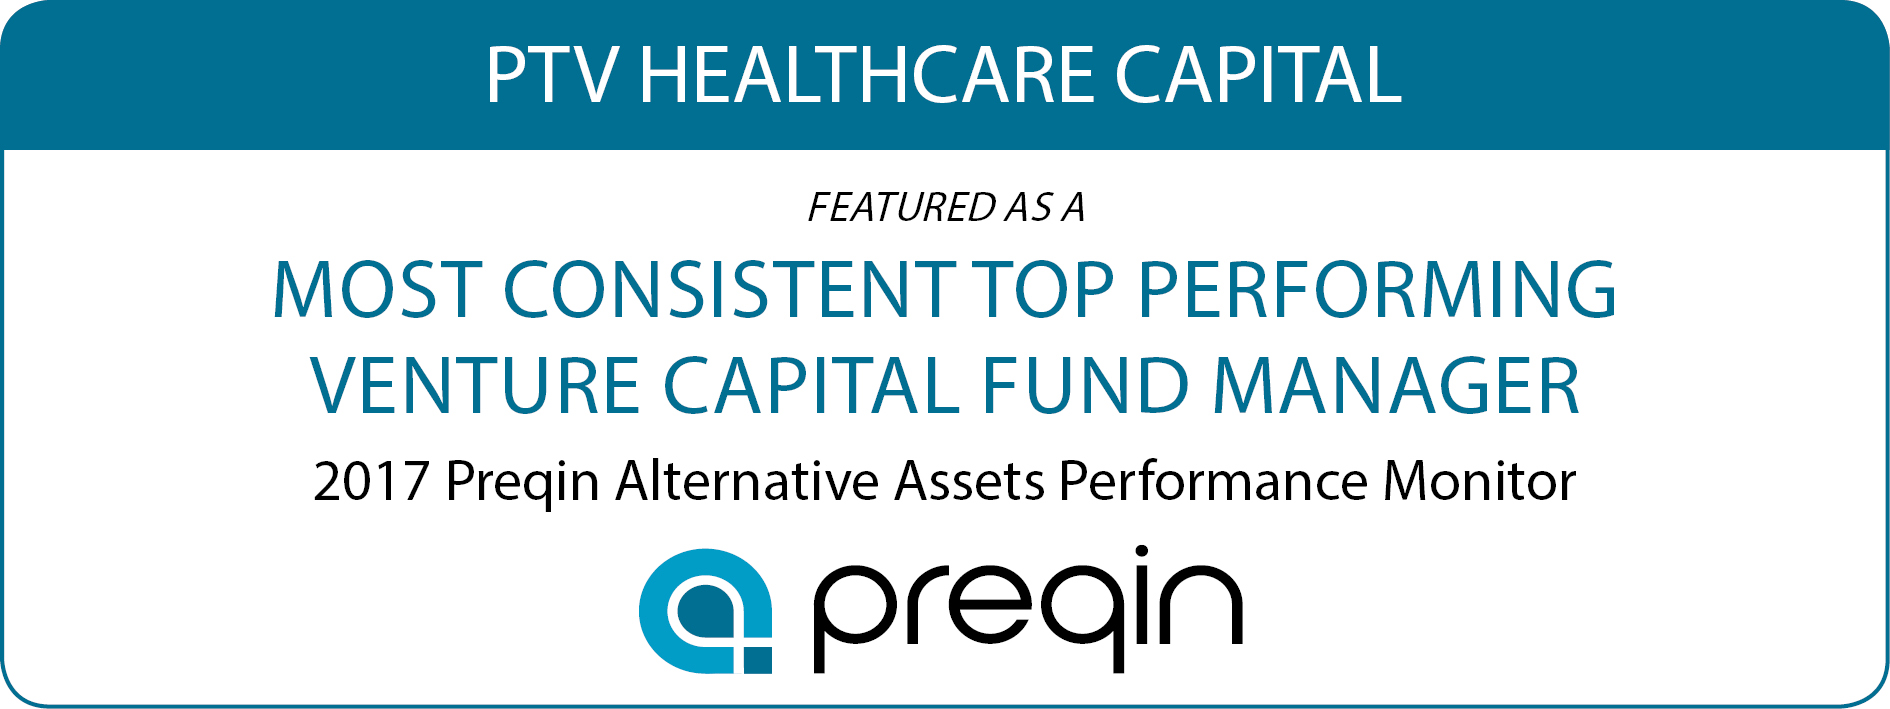 Most Consistent Top Performing Venture Capital Fund Manager - PTVHCC